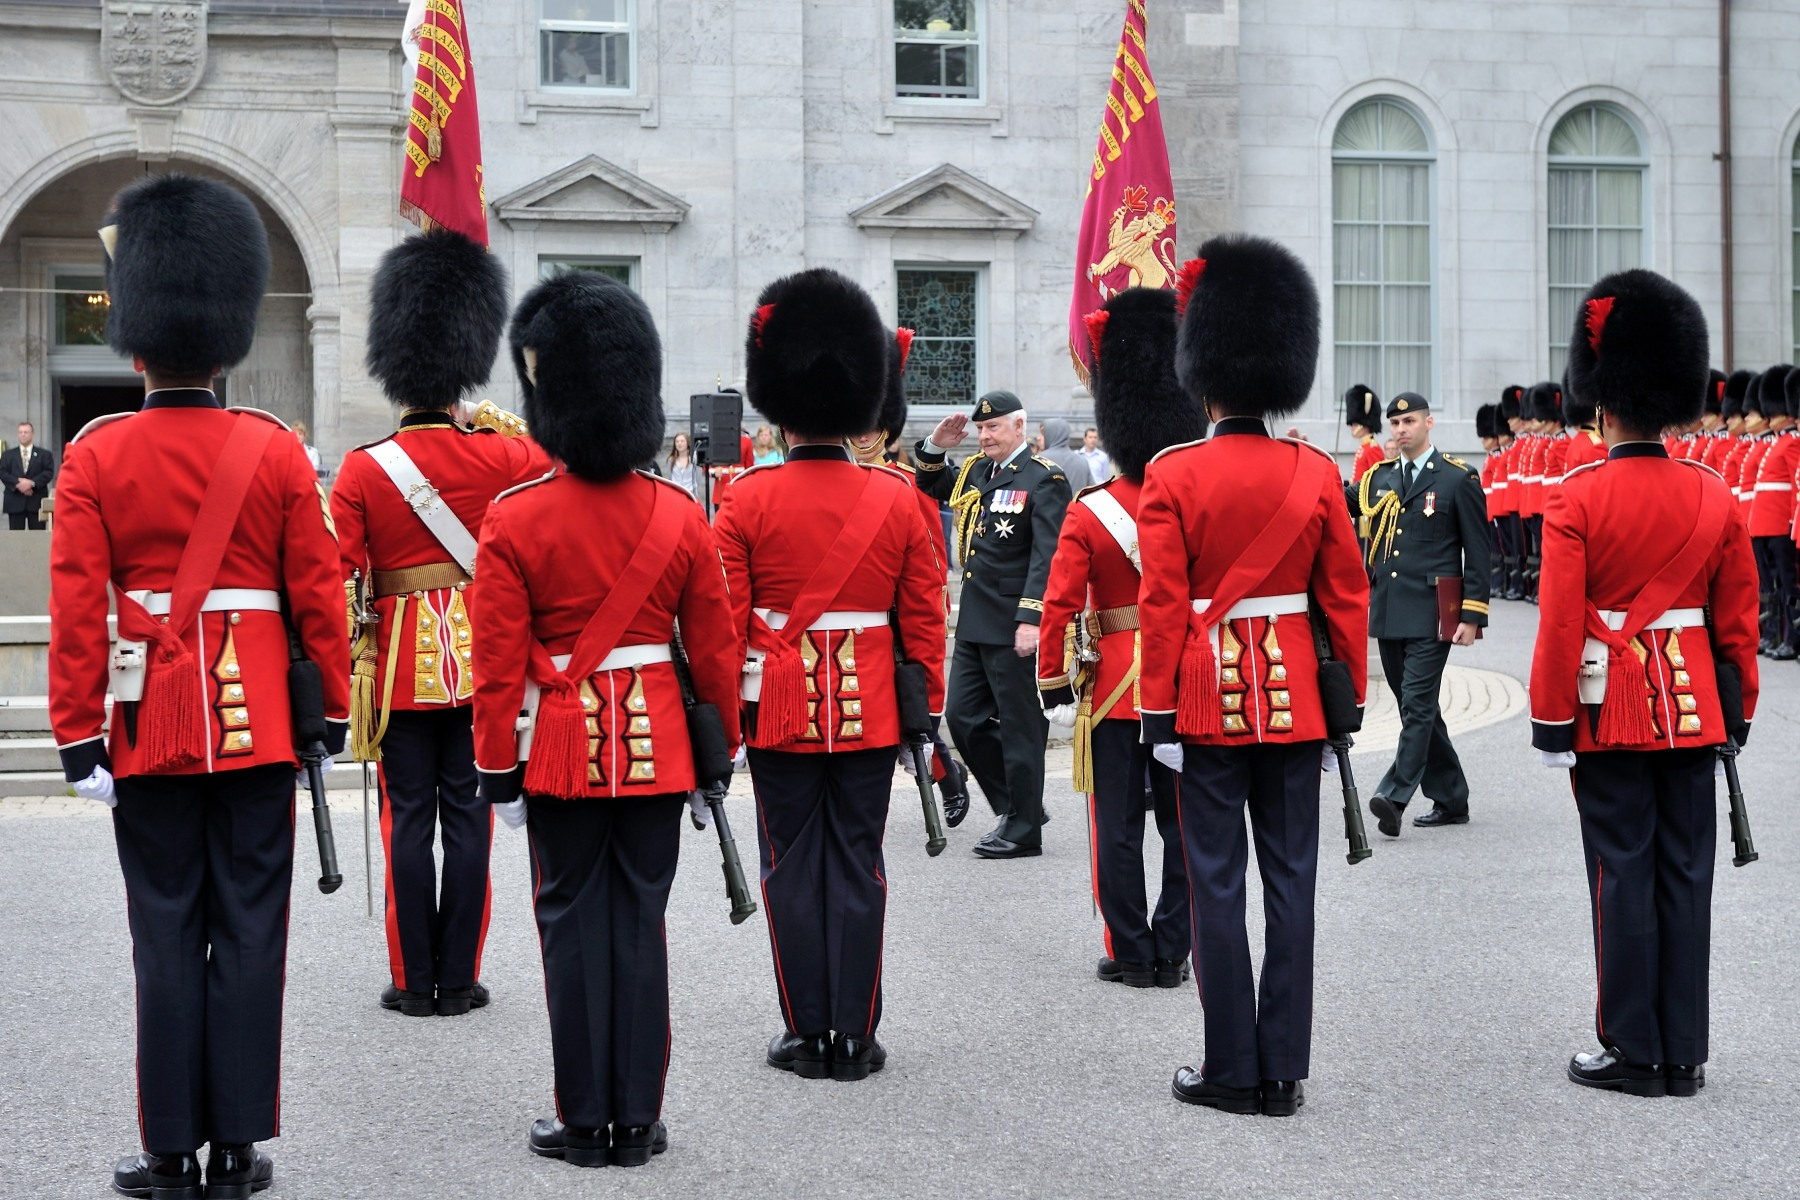 The Ceremonial Guard performs a variety of public duties in Ottawa between late June and the end of August. In addition to sentry duty at Rideau Hall, they perform in the daily Changing of the Guard ceremony on Parliament Hill at 10:00 a.m.; on sentry duty at the Tomb of the Unknown Soldier at the National War Memorial from 9 a.m. to 5 p.m.; in the mounting of guards of honour during visits by dignitaries; and in public concerts, military functions or other ceremonies throughout the National Capital Region.